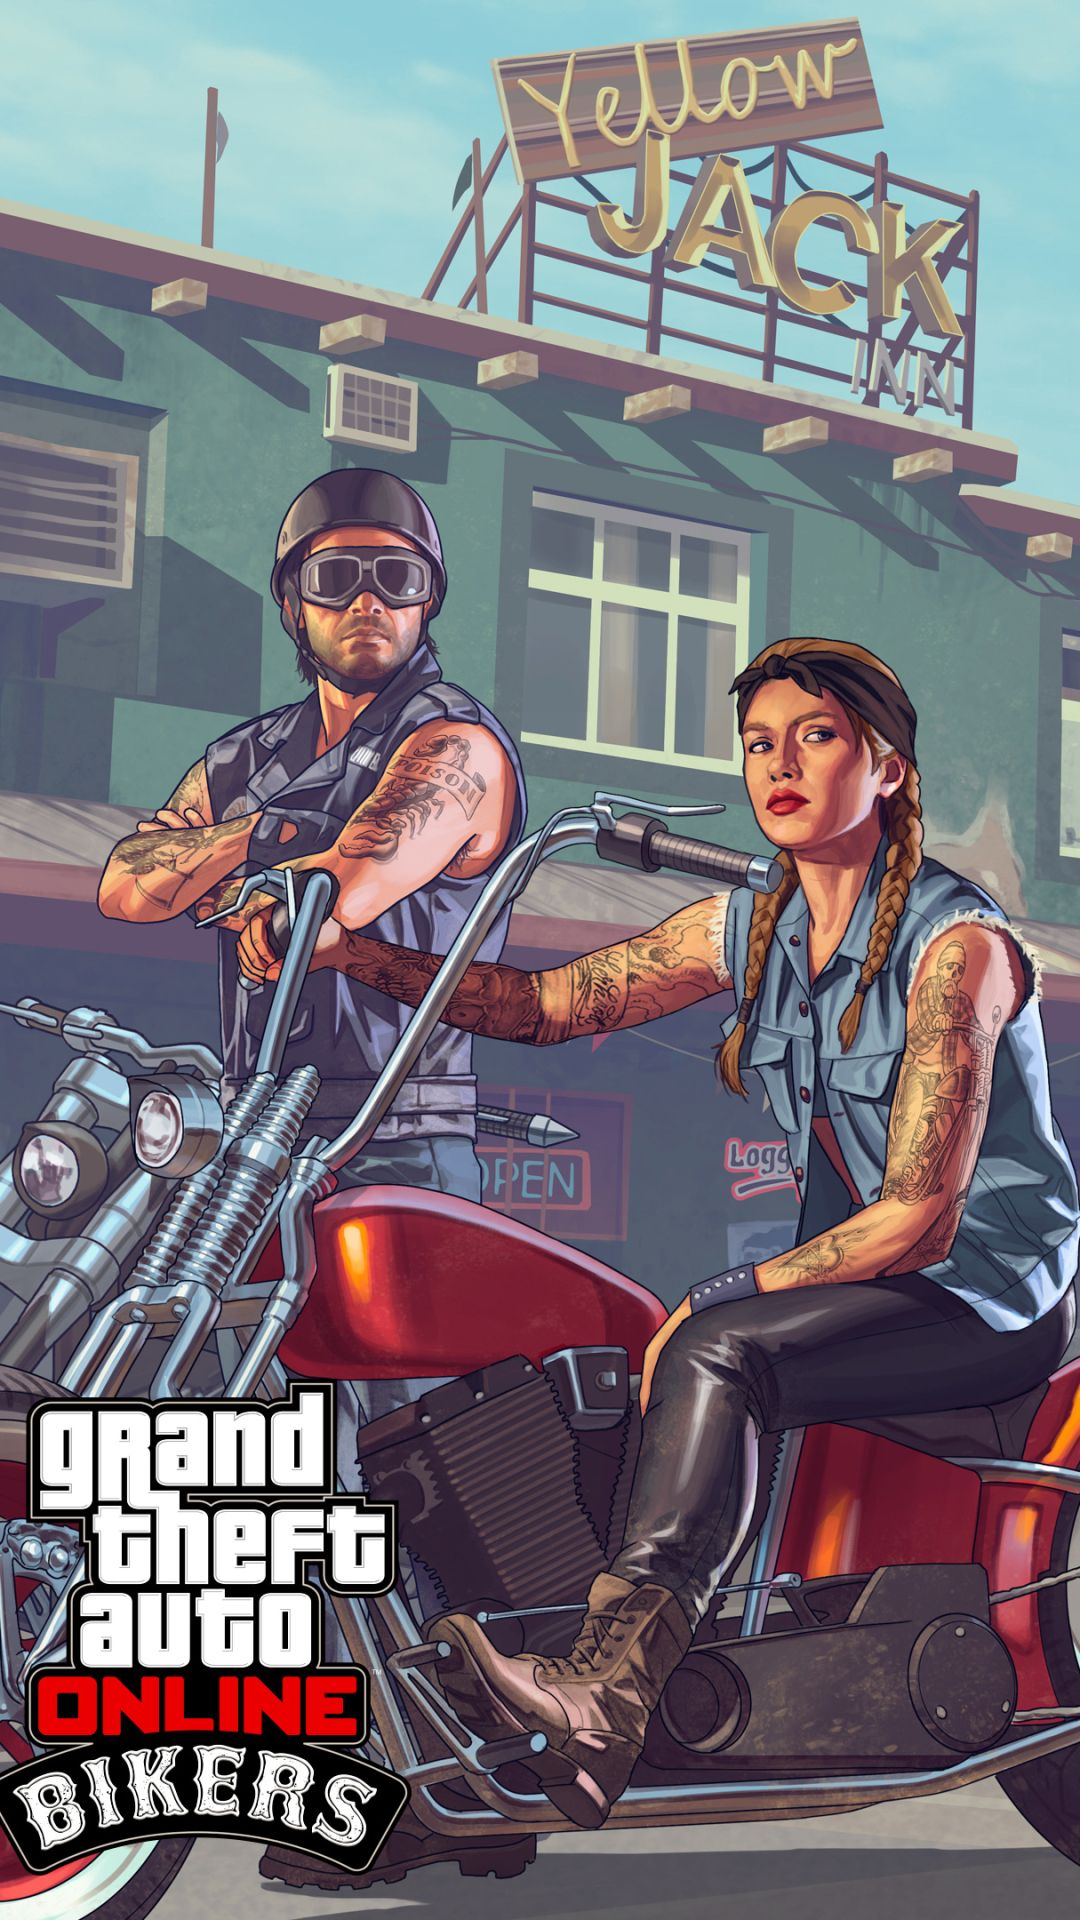 HD Wallpaper 65 gta v Grand theft auto, Grand theft